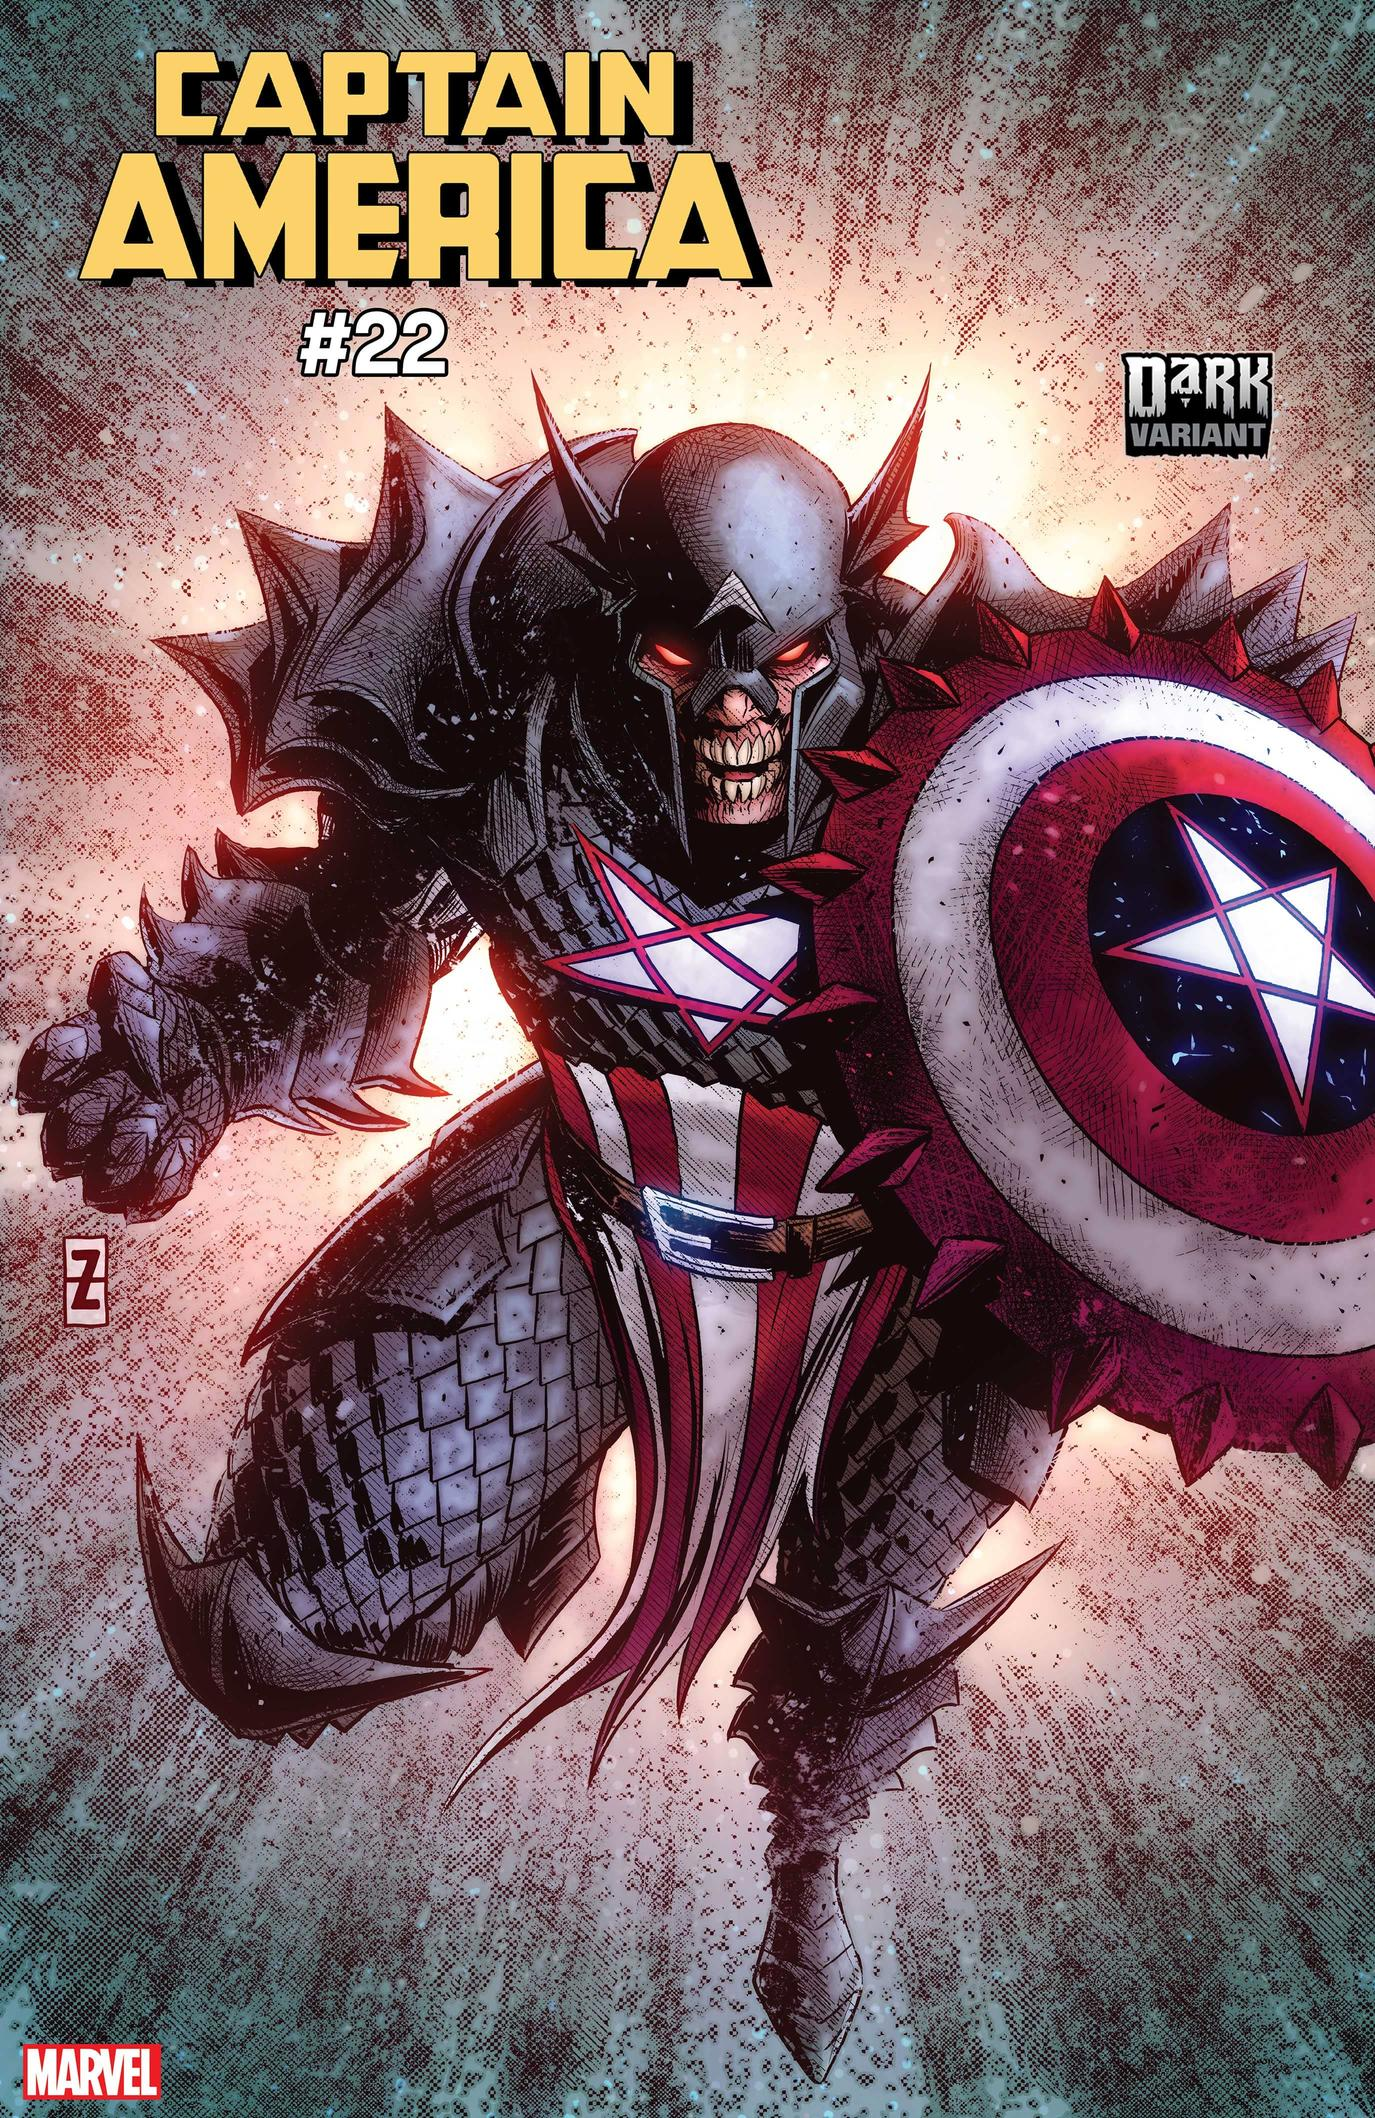 CAPTAIN AMERICA #22 DARK MARVEL VARIANT by PATCH ZIRCHER with colors by MORRY HOLLOWELL